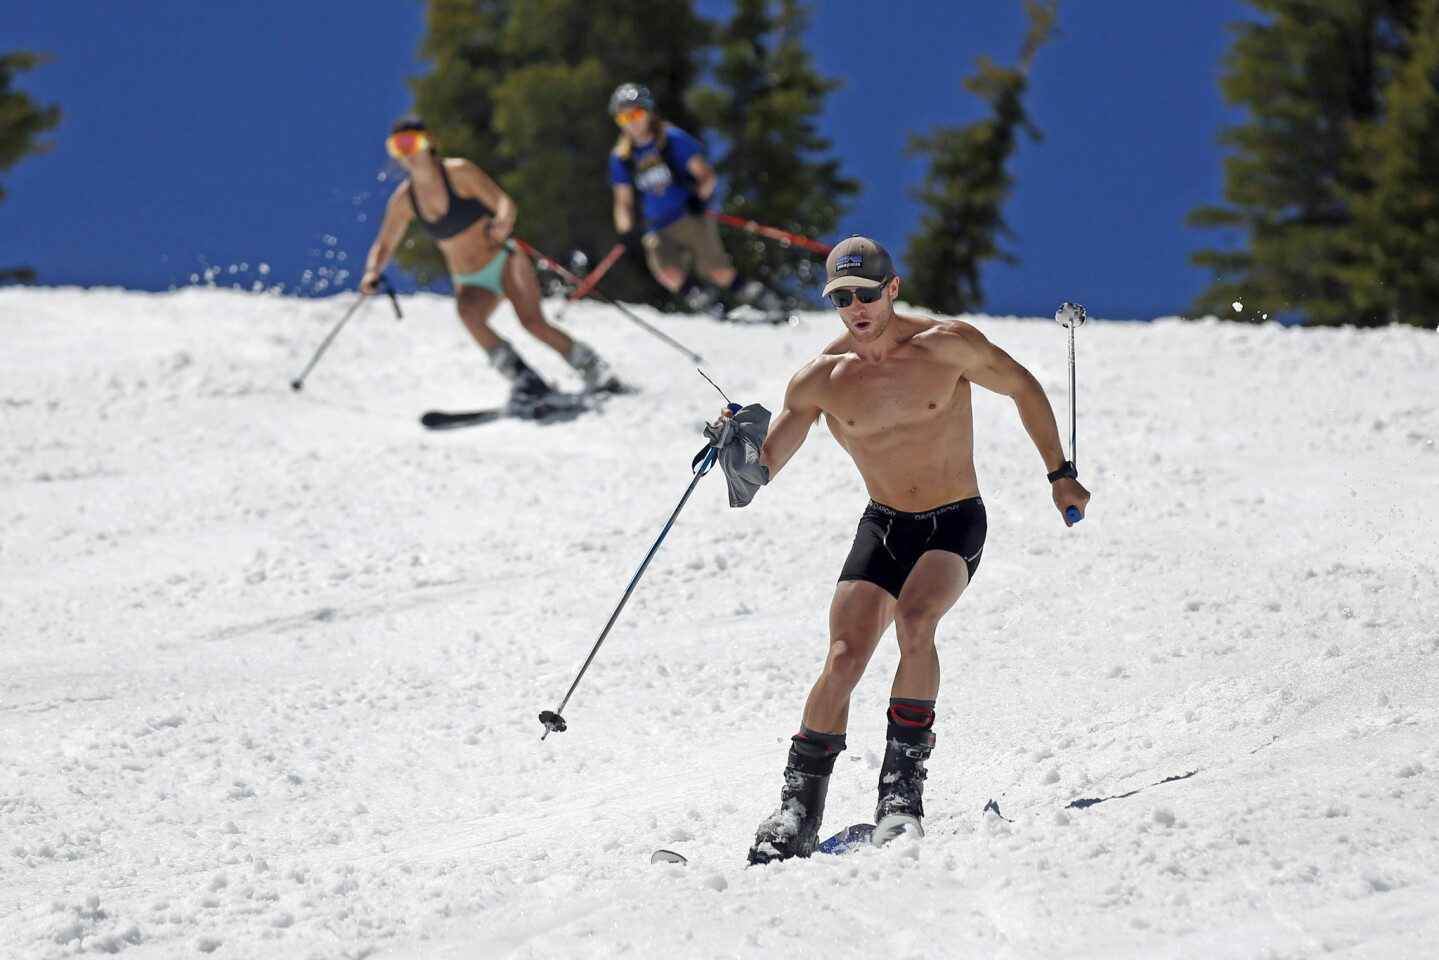 Bikini tops and snowcaps: Skiers at Squaw Valley Ski Resort in Olympic Valley, Calif.